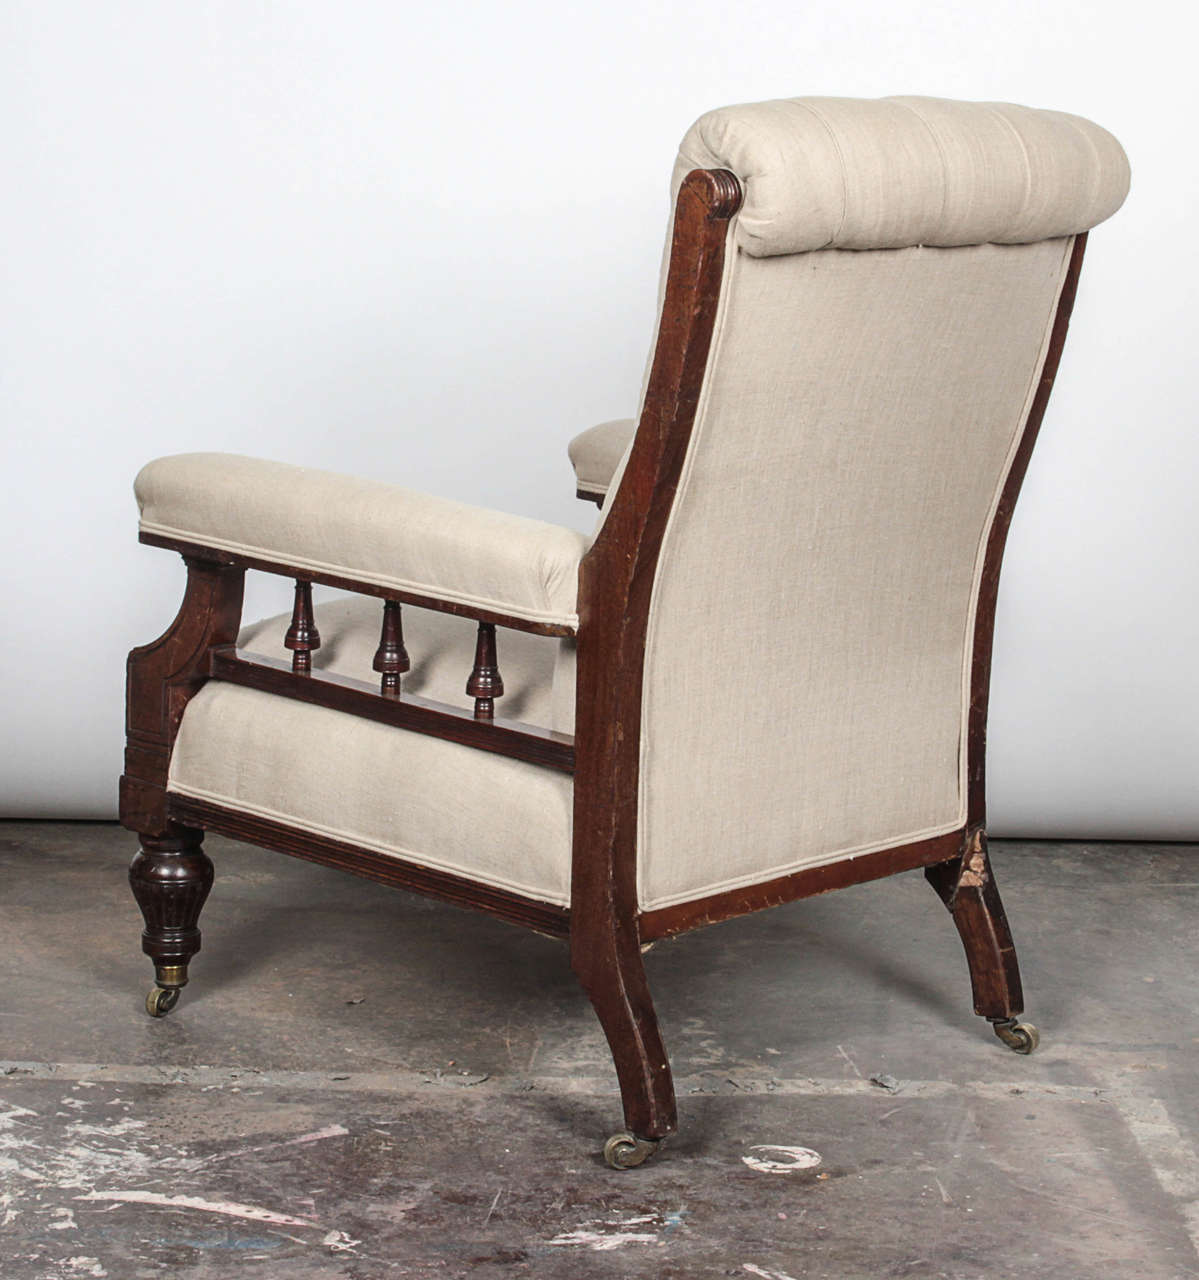 19th Century Pair of Victorian Mahogany and Button-Tufted Armchairs For Sale